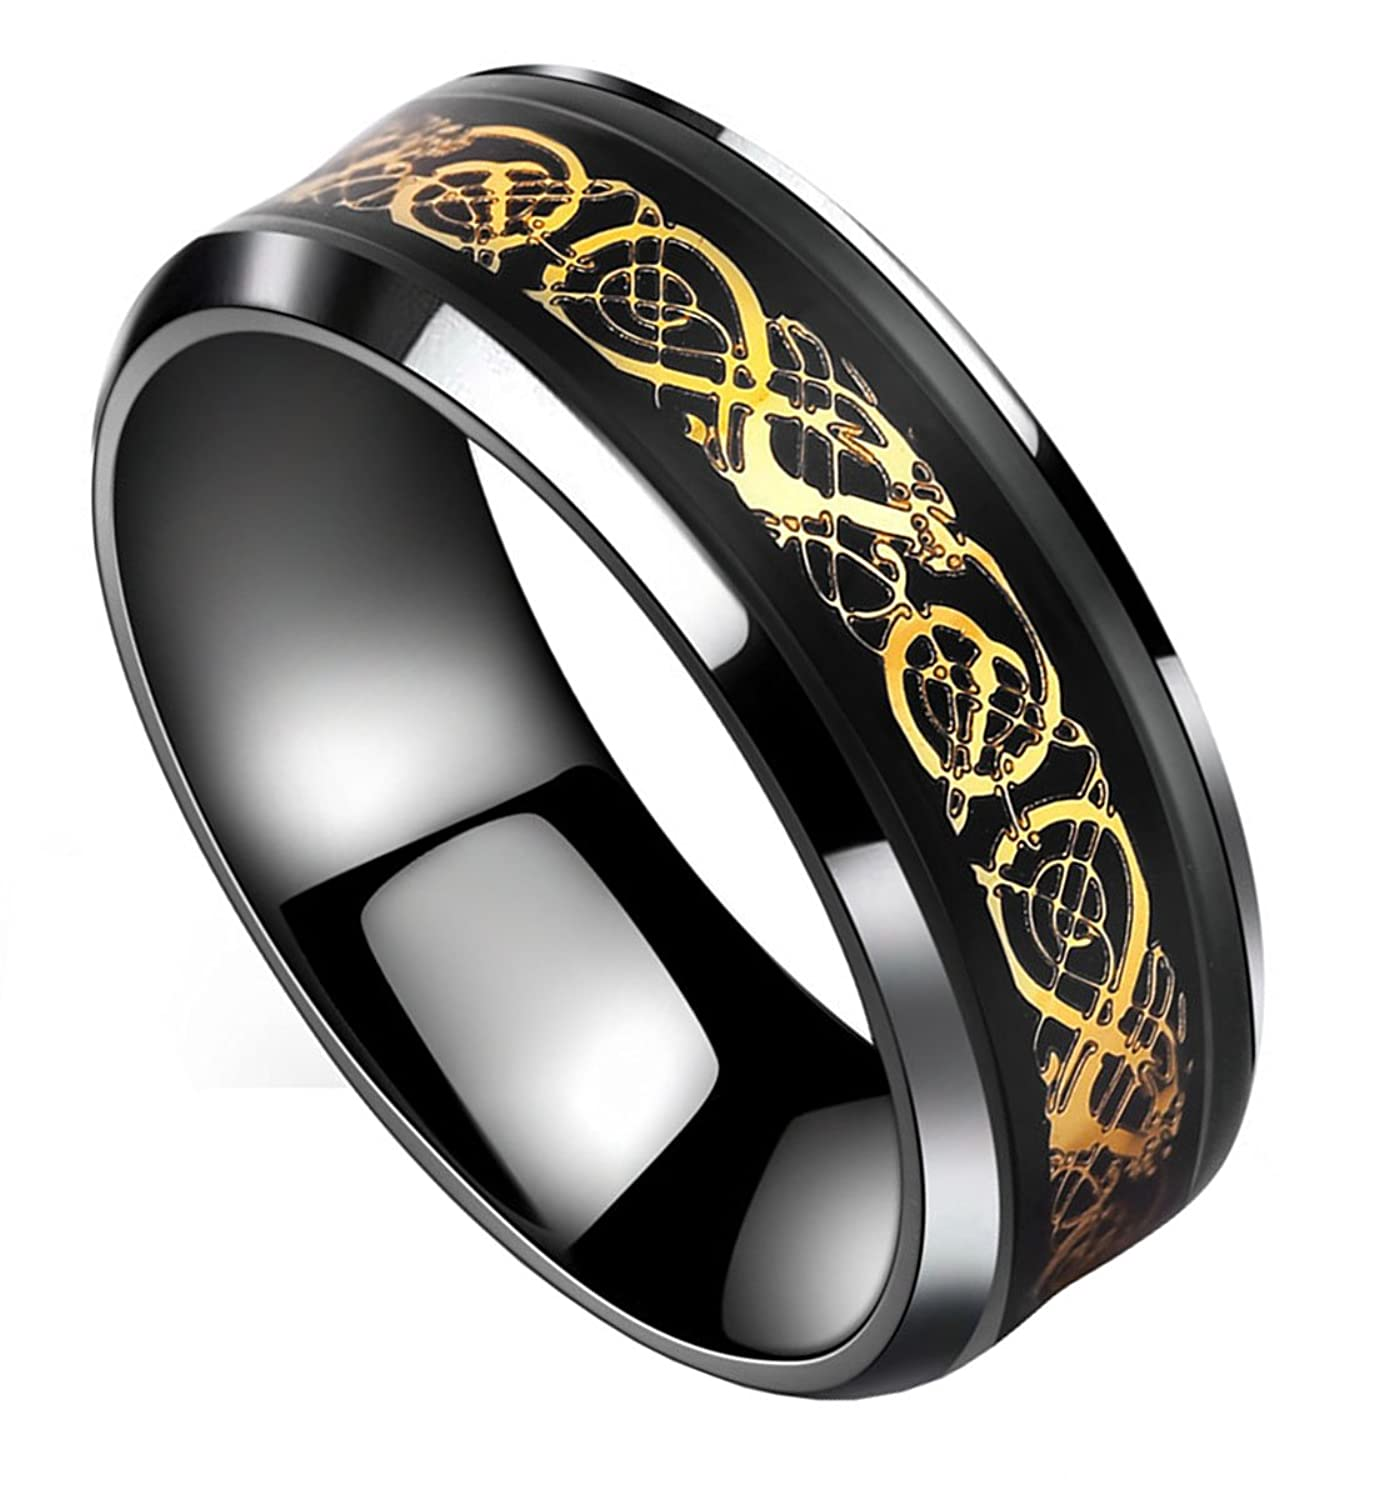 tanyoyo black gold celtic dragon stainless steel ring wedding band